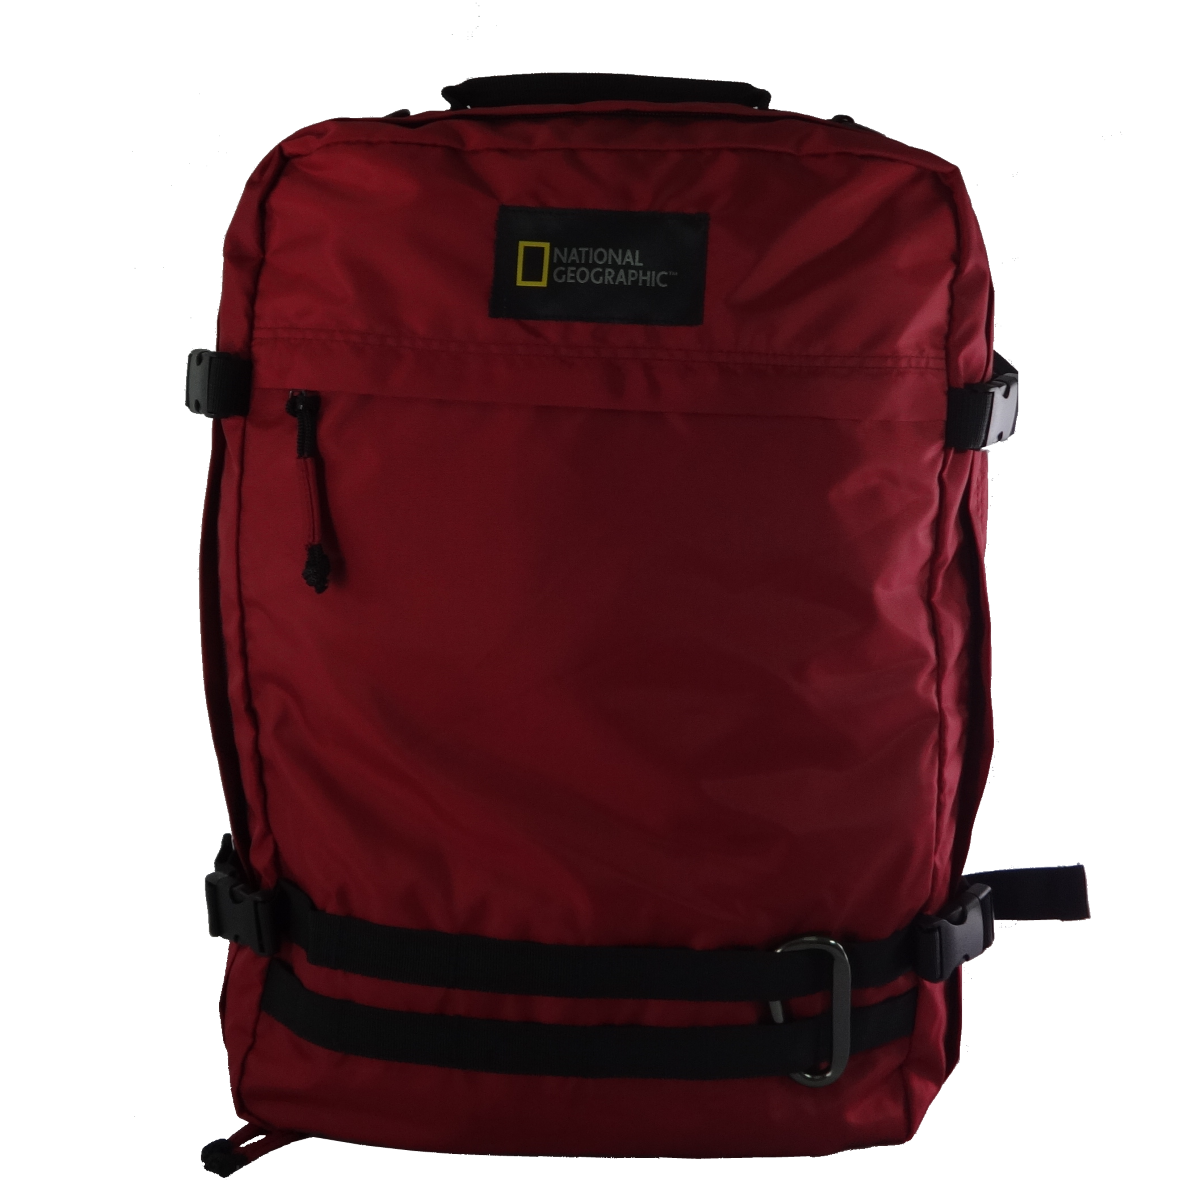 N11801-35-front (web).png